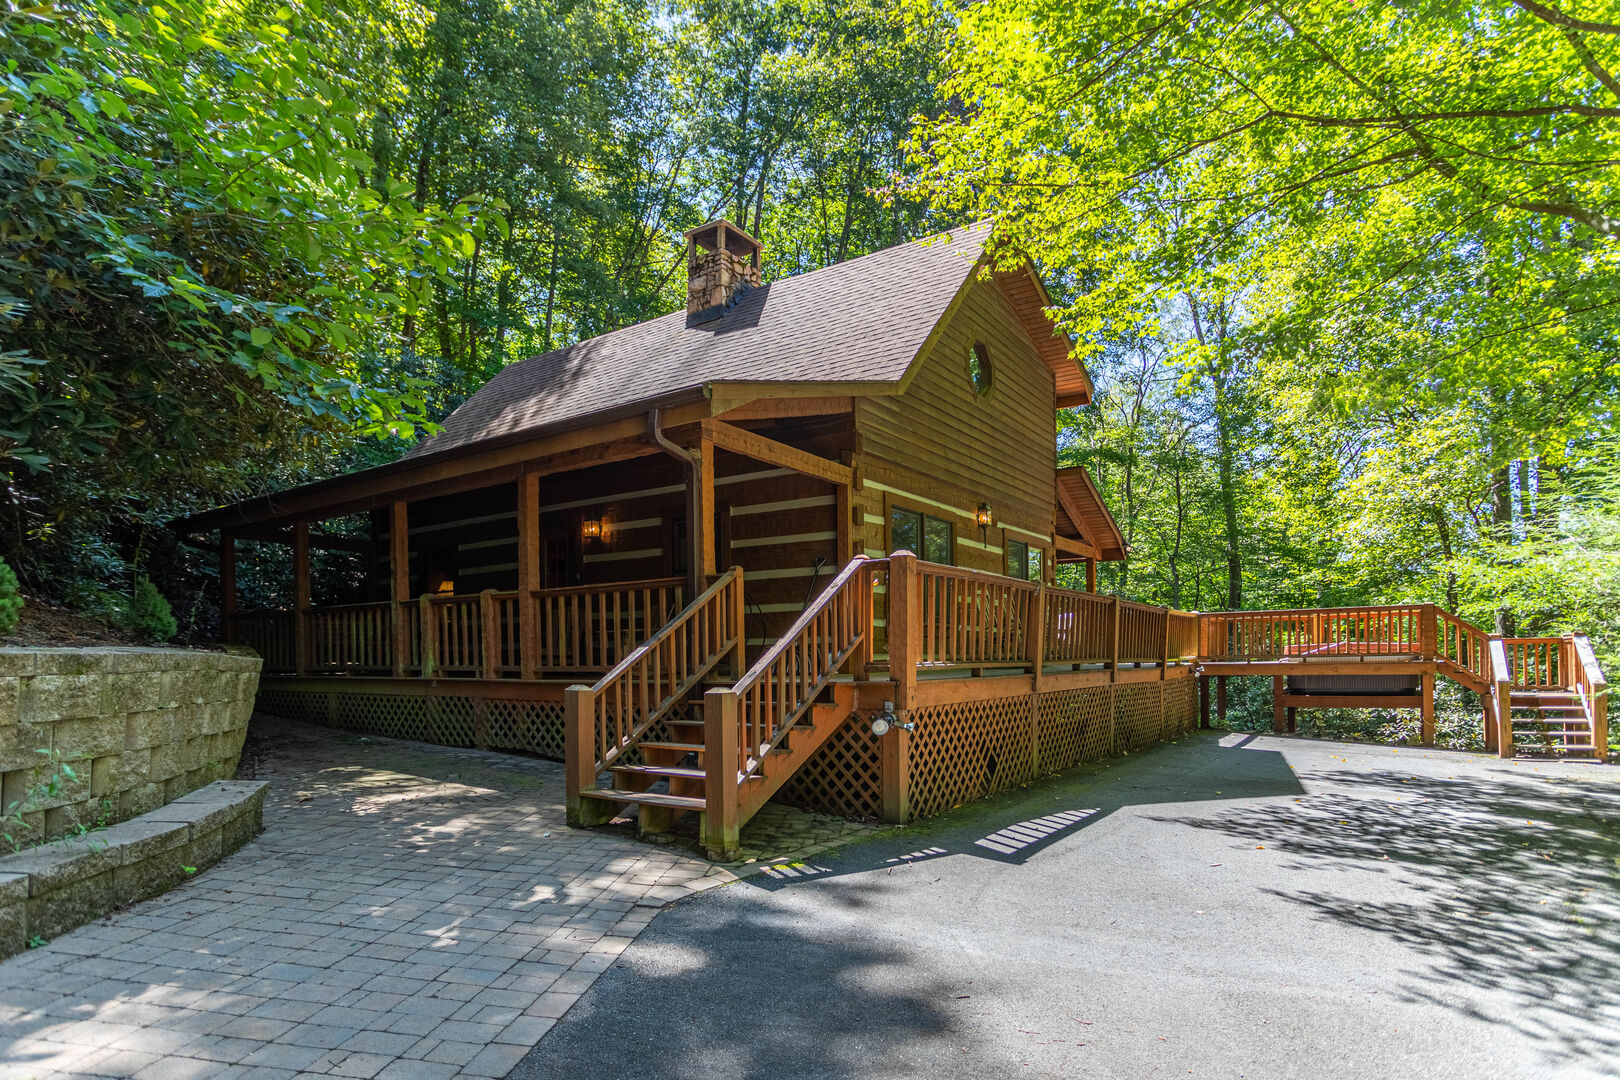 Property Info - The Best Boone NC Cabin Rentals and Blowing Rock NC Cabin  Rentals